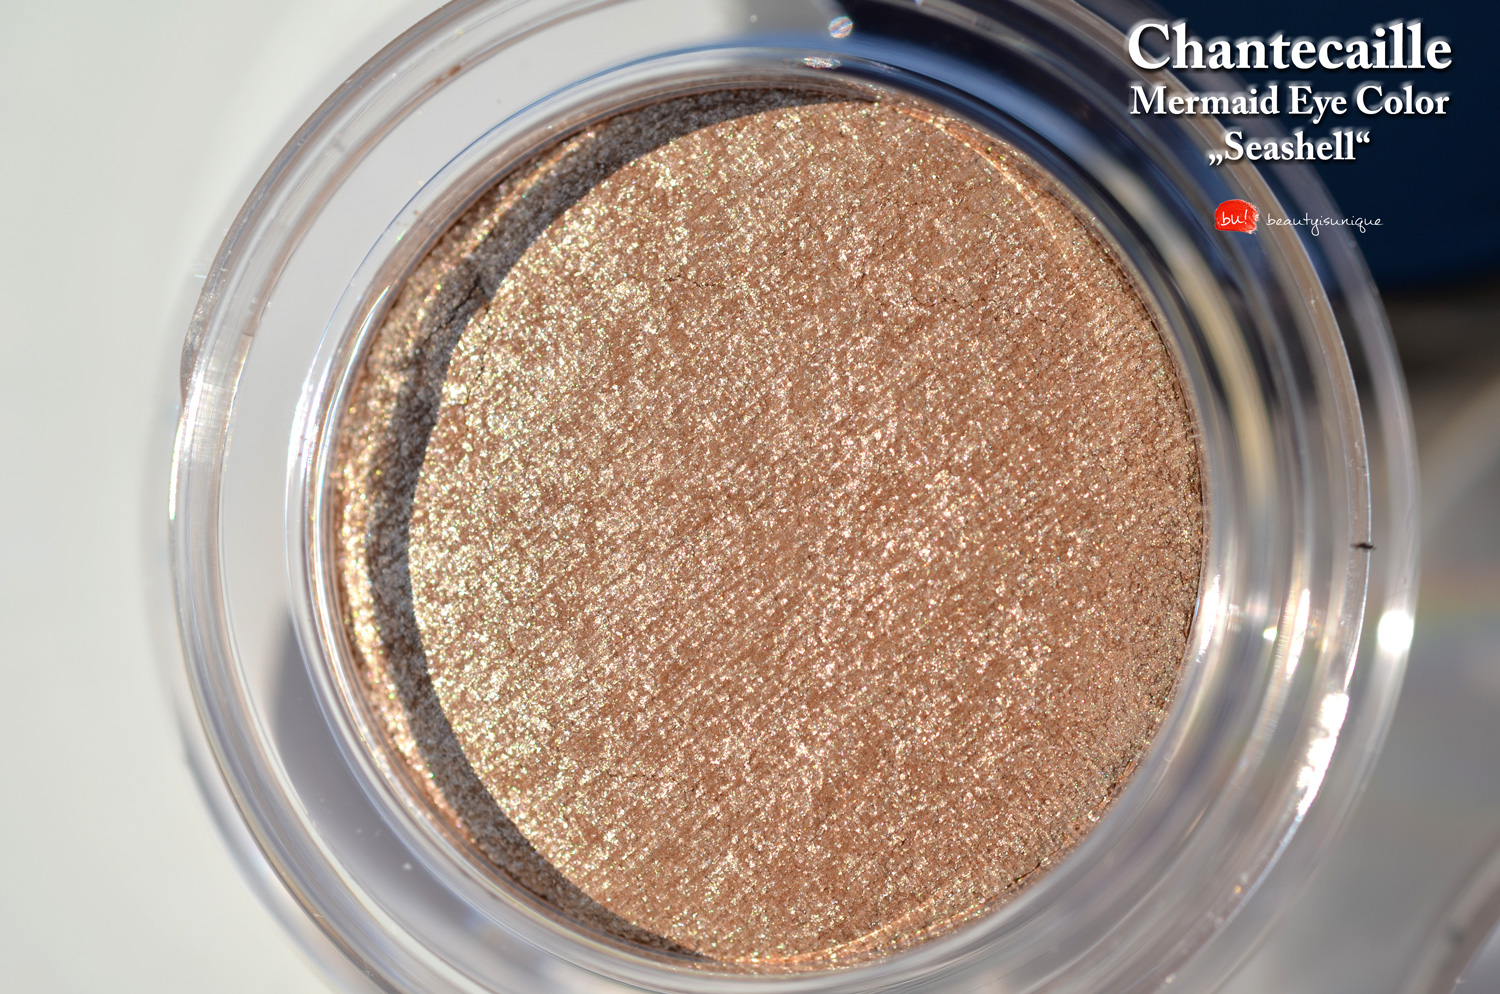 chantecaille-seashell-mermaid-eye-color